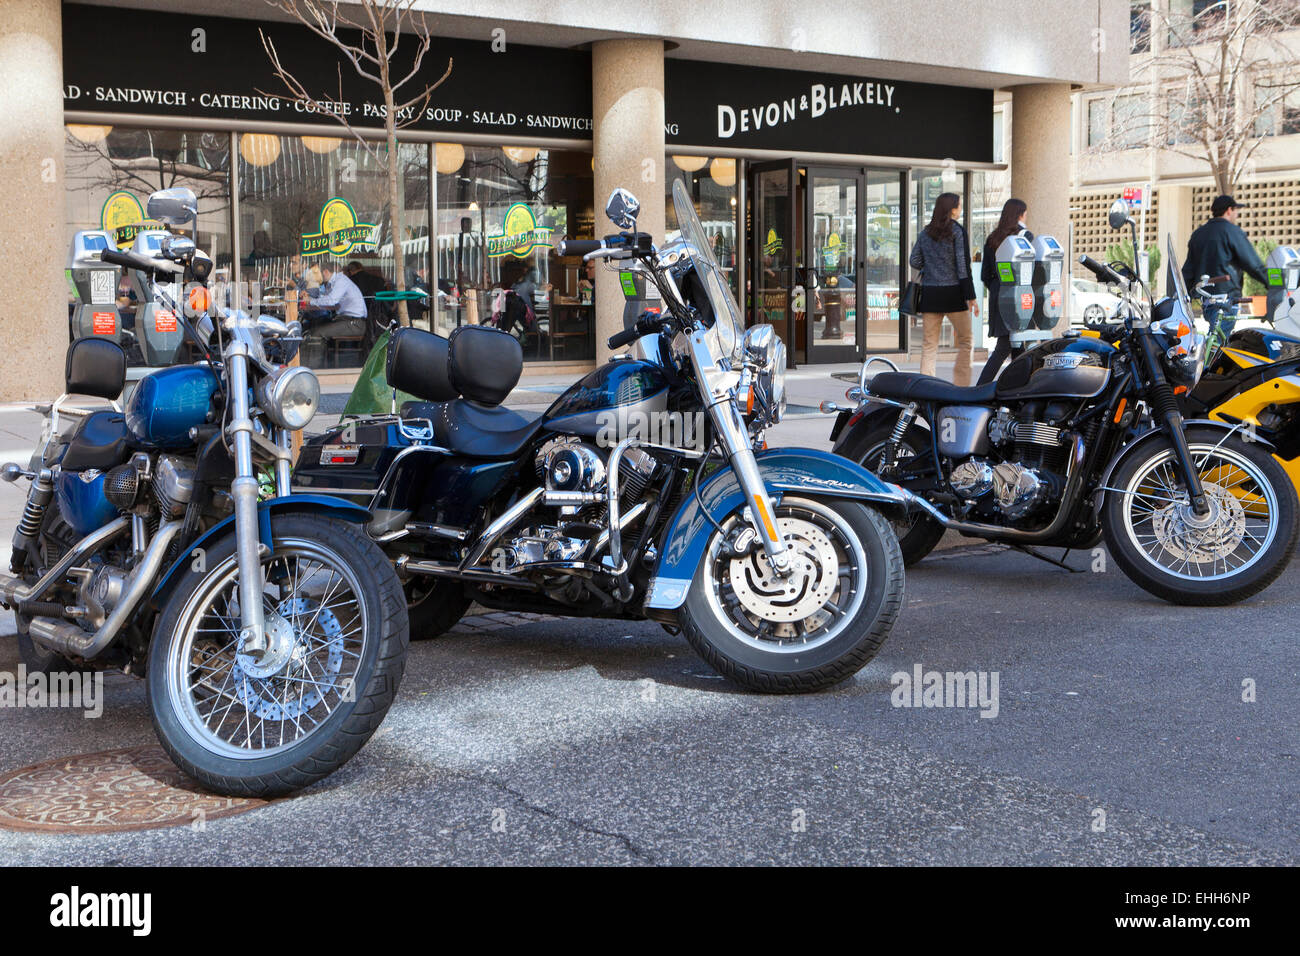 Street parked motorcycles - USA - Stock Image